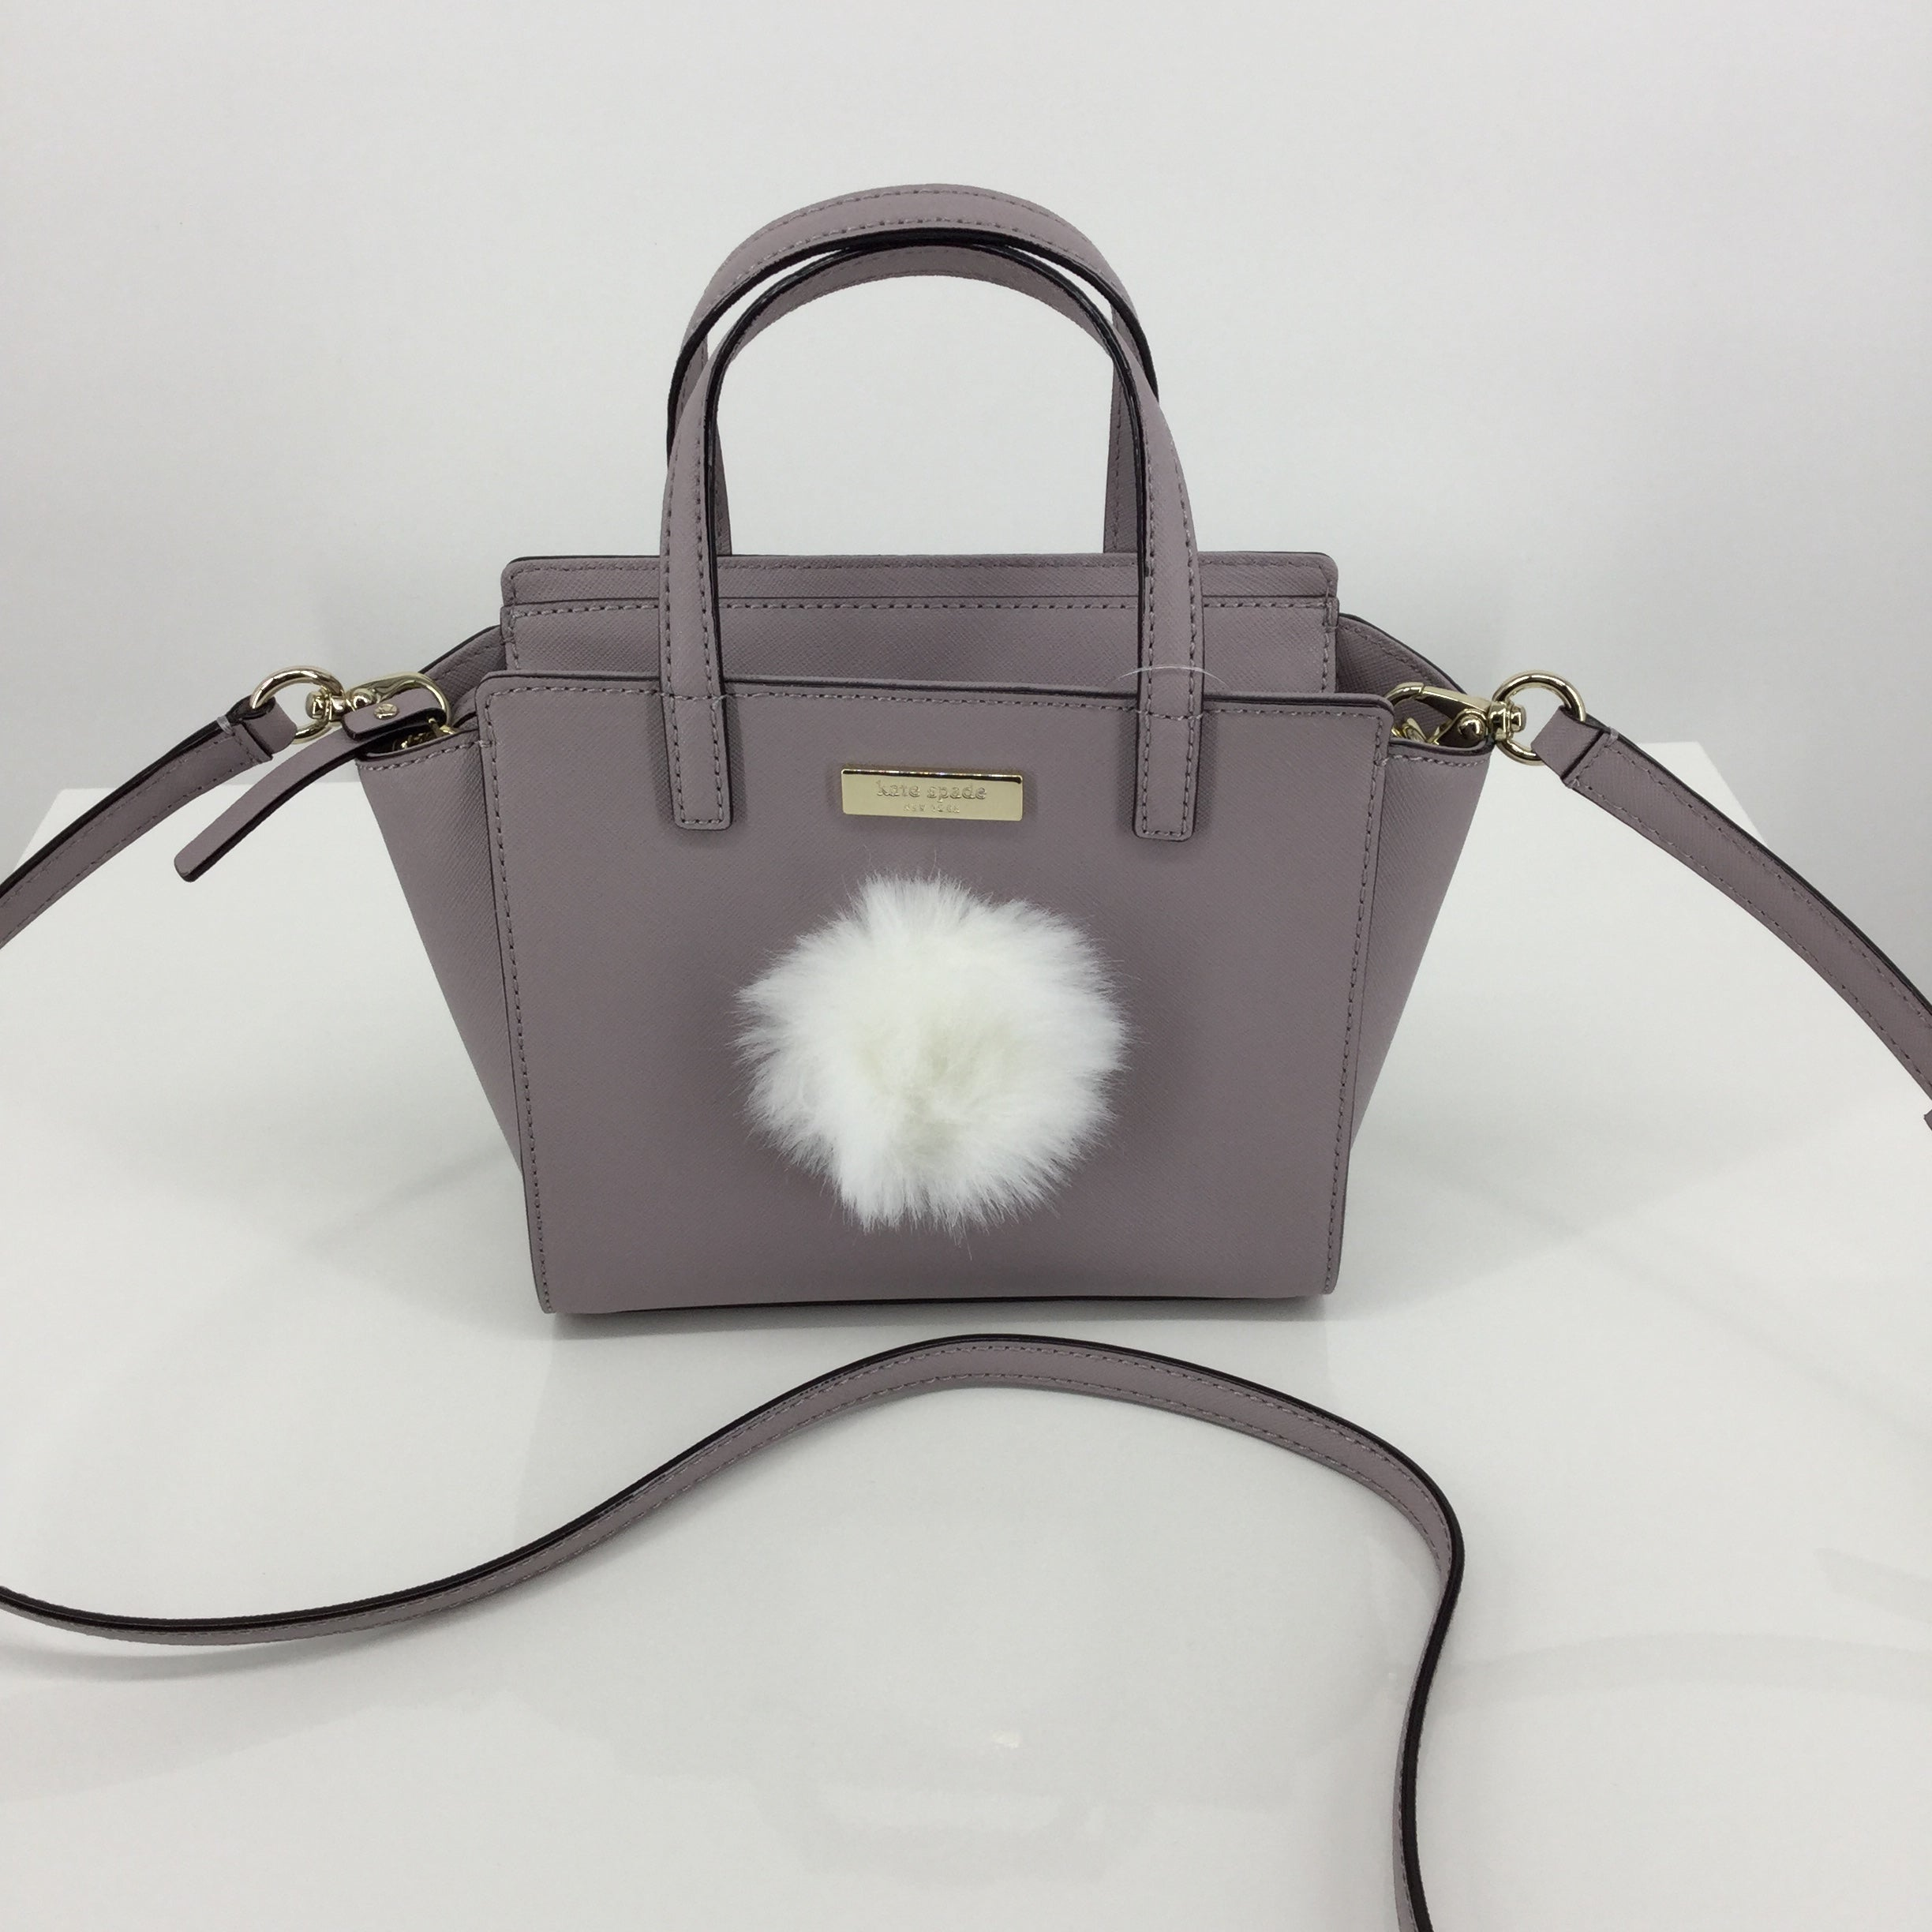 ACCESSORIES,PURSES AND HANDBAGS - NEW WITH TAGS KATE SPADE RABBIT MINI HAYDEN